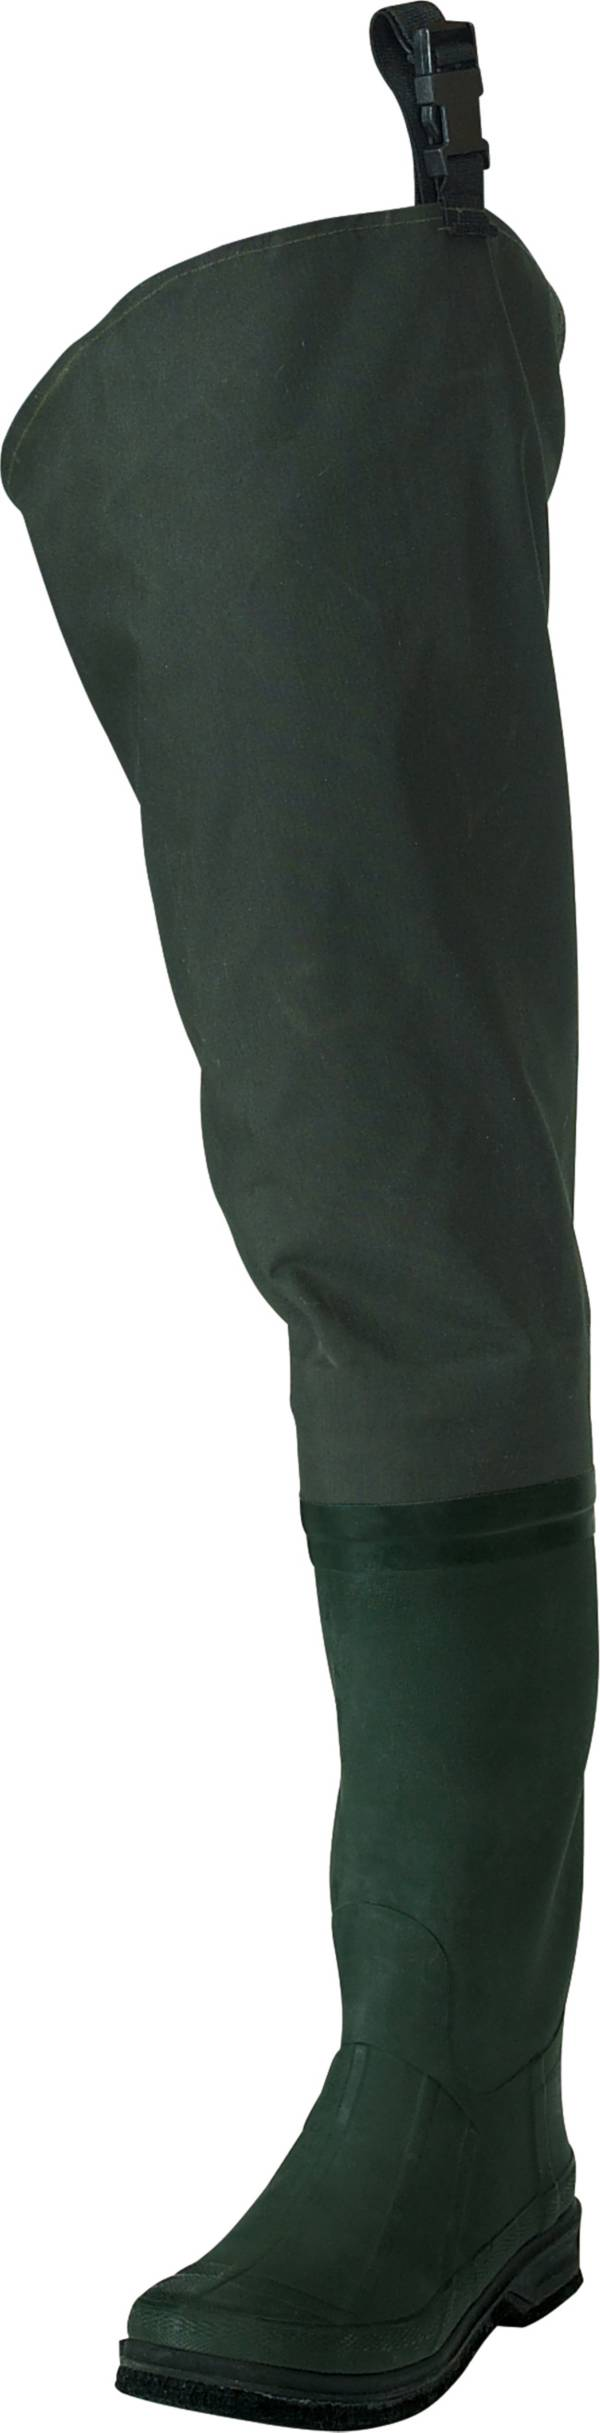 frogg toggs Youth Cascades Rubber Hip Waders product image